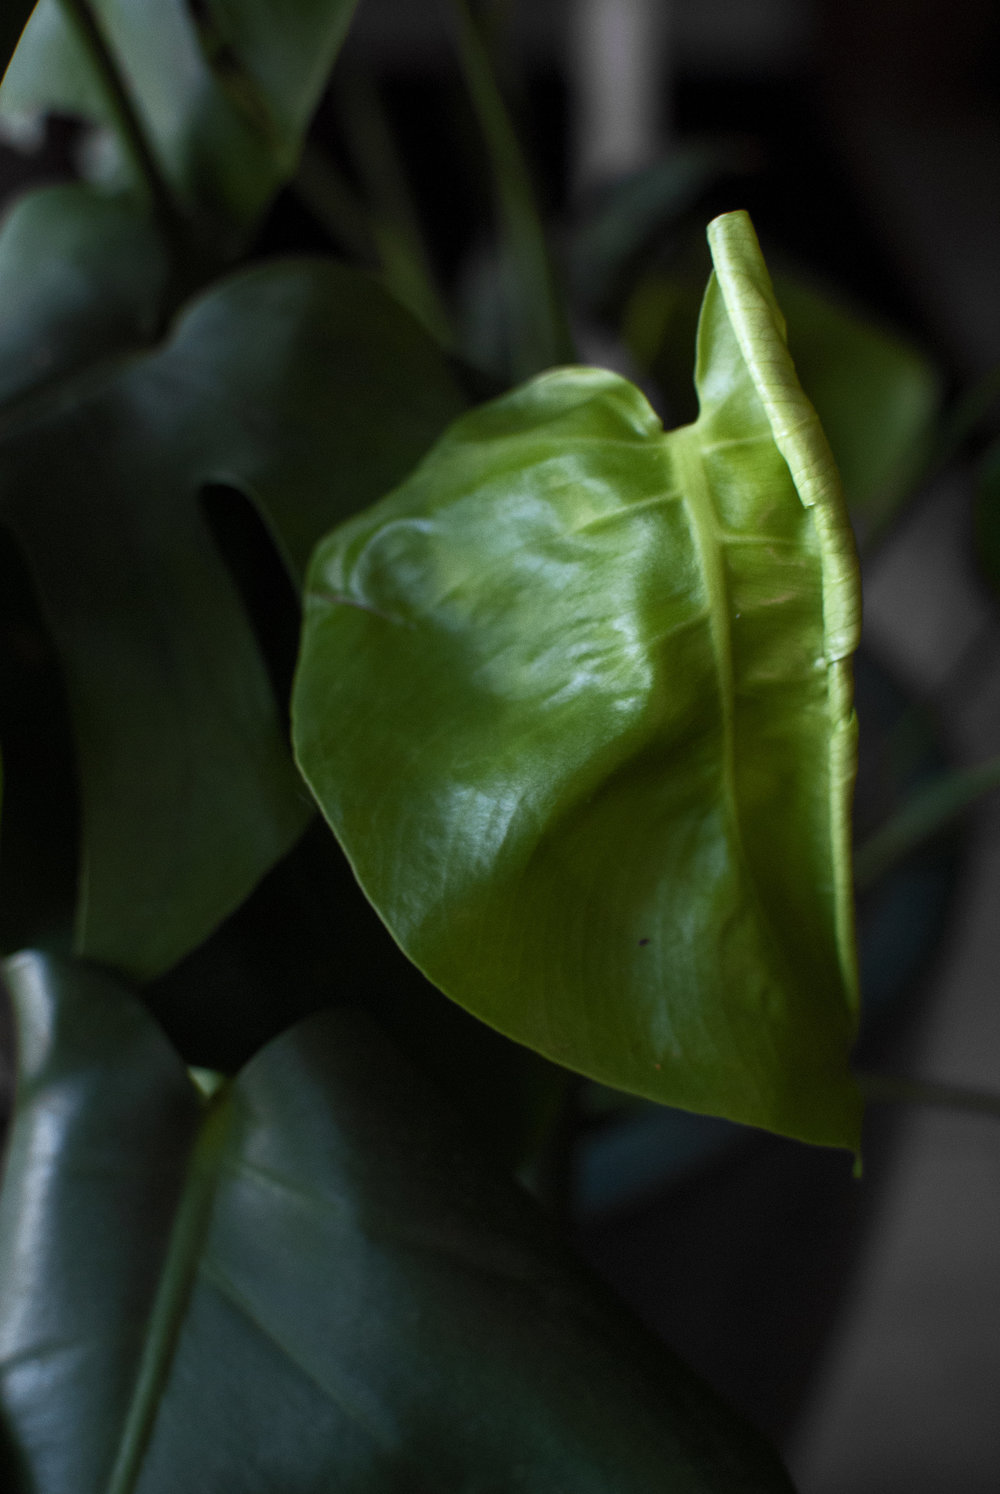 A new leaf unfurling.